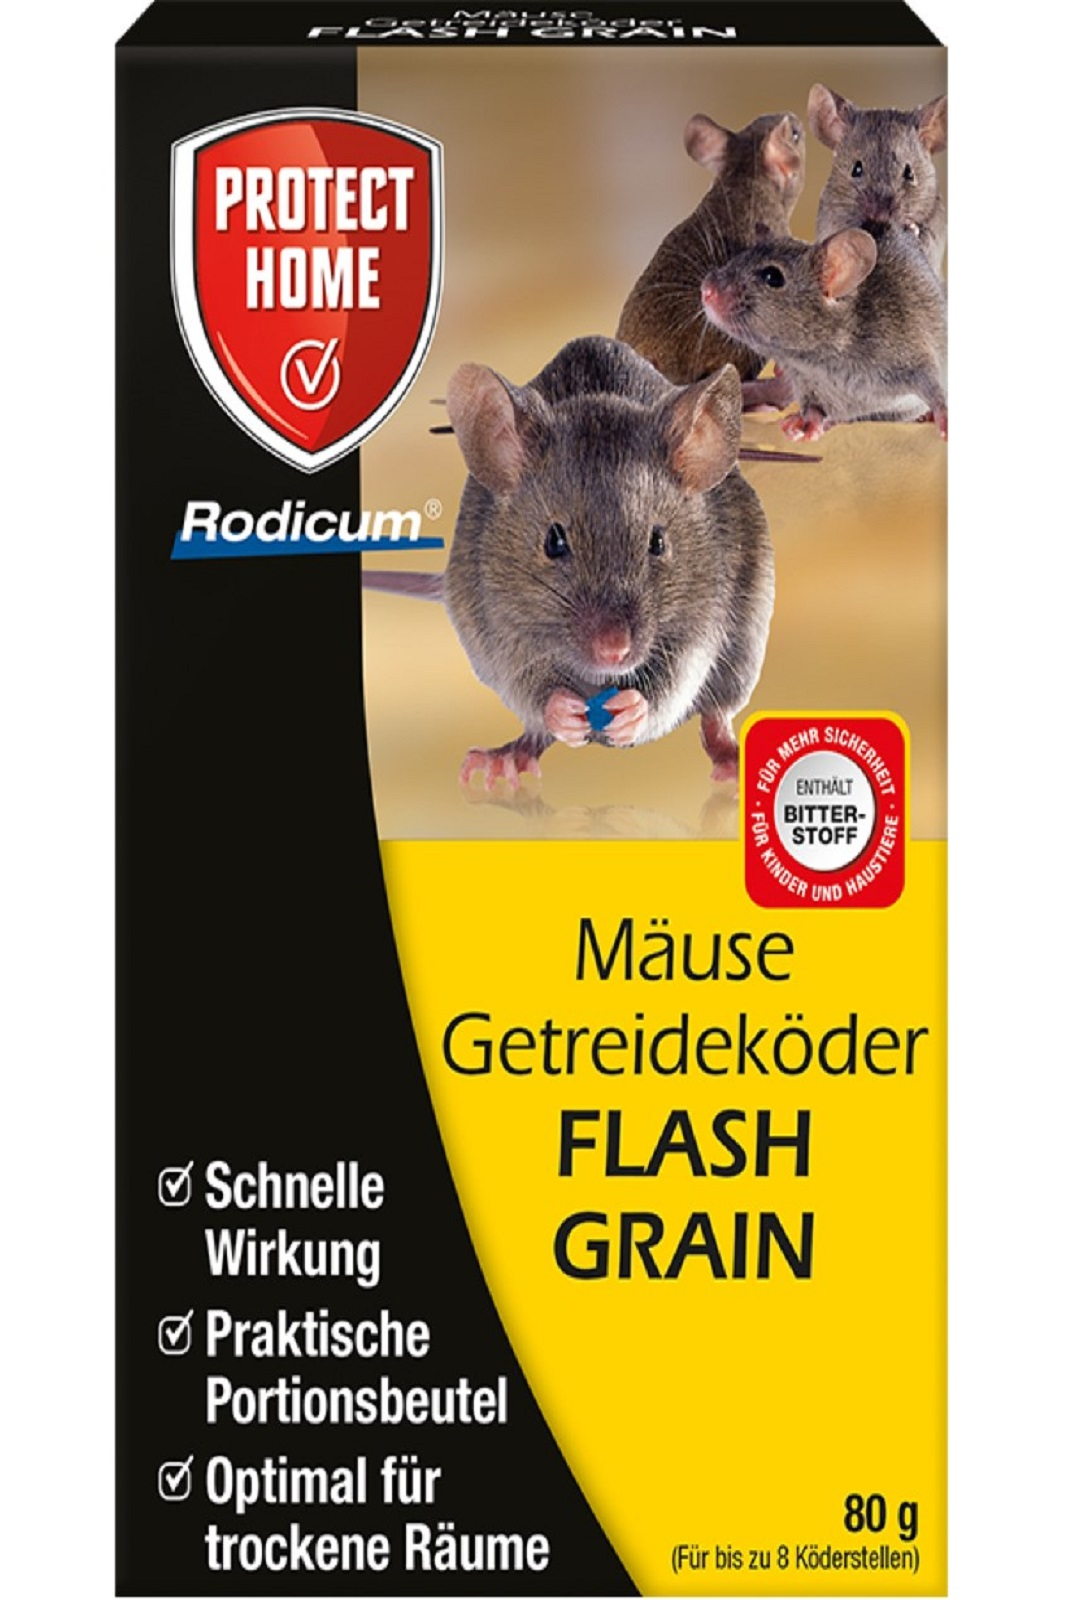 Protect Home Mäuse Getreideköder Flash Grain